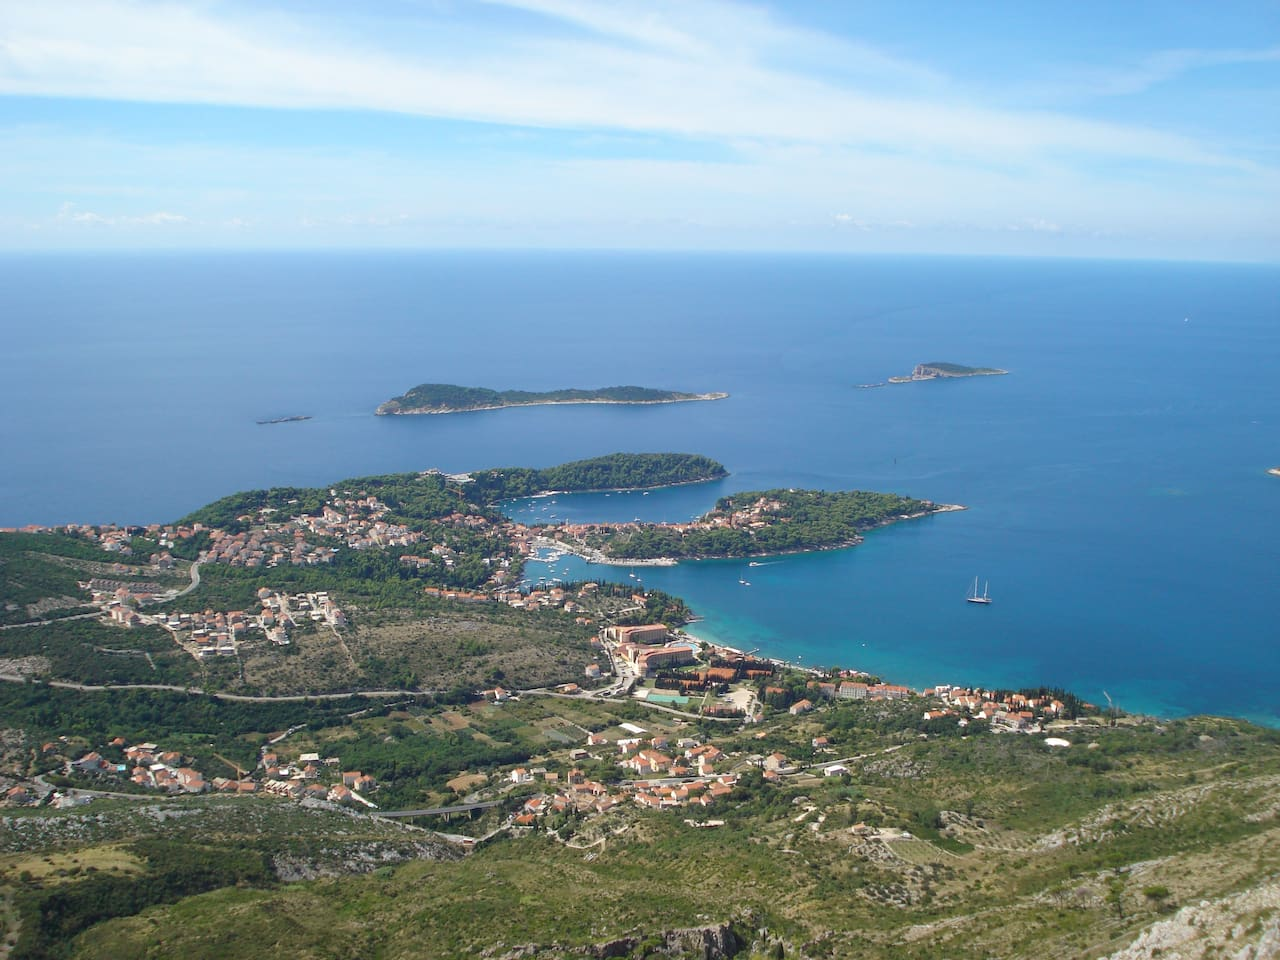 View over Cavtat